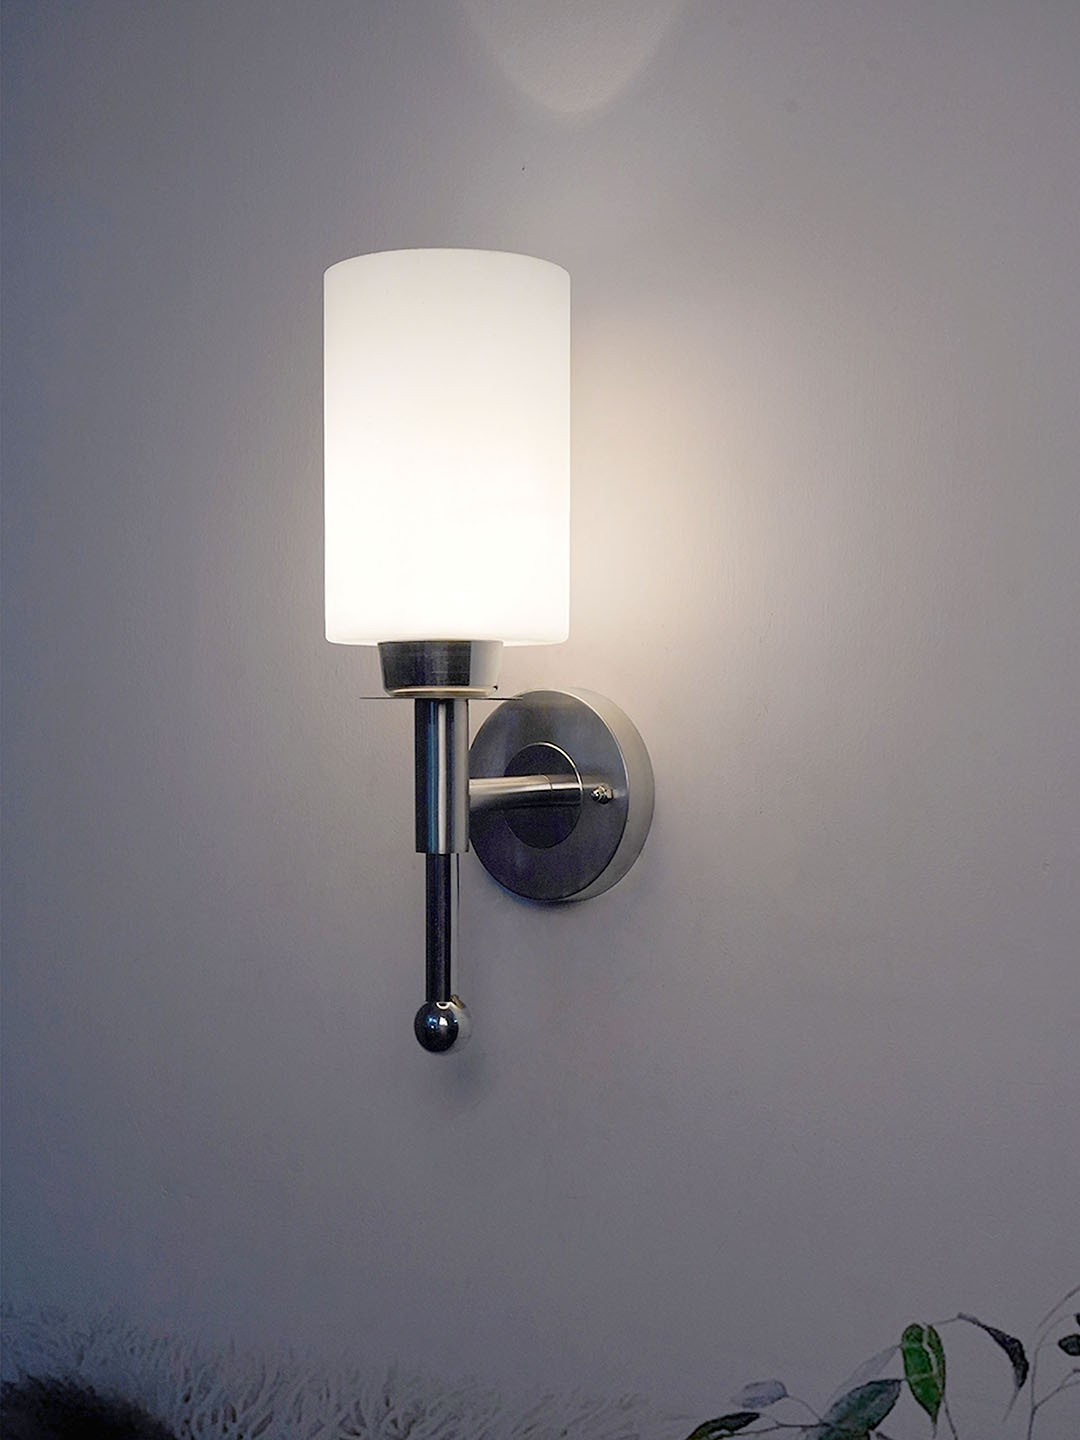 Antique Designed Silver Colour Wall Light Round Shape Stainless Steel Wall Lamps for Decoration